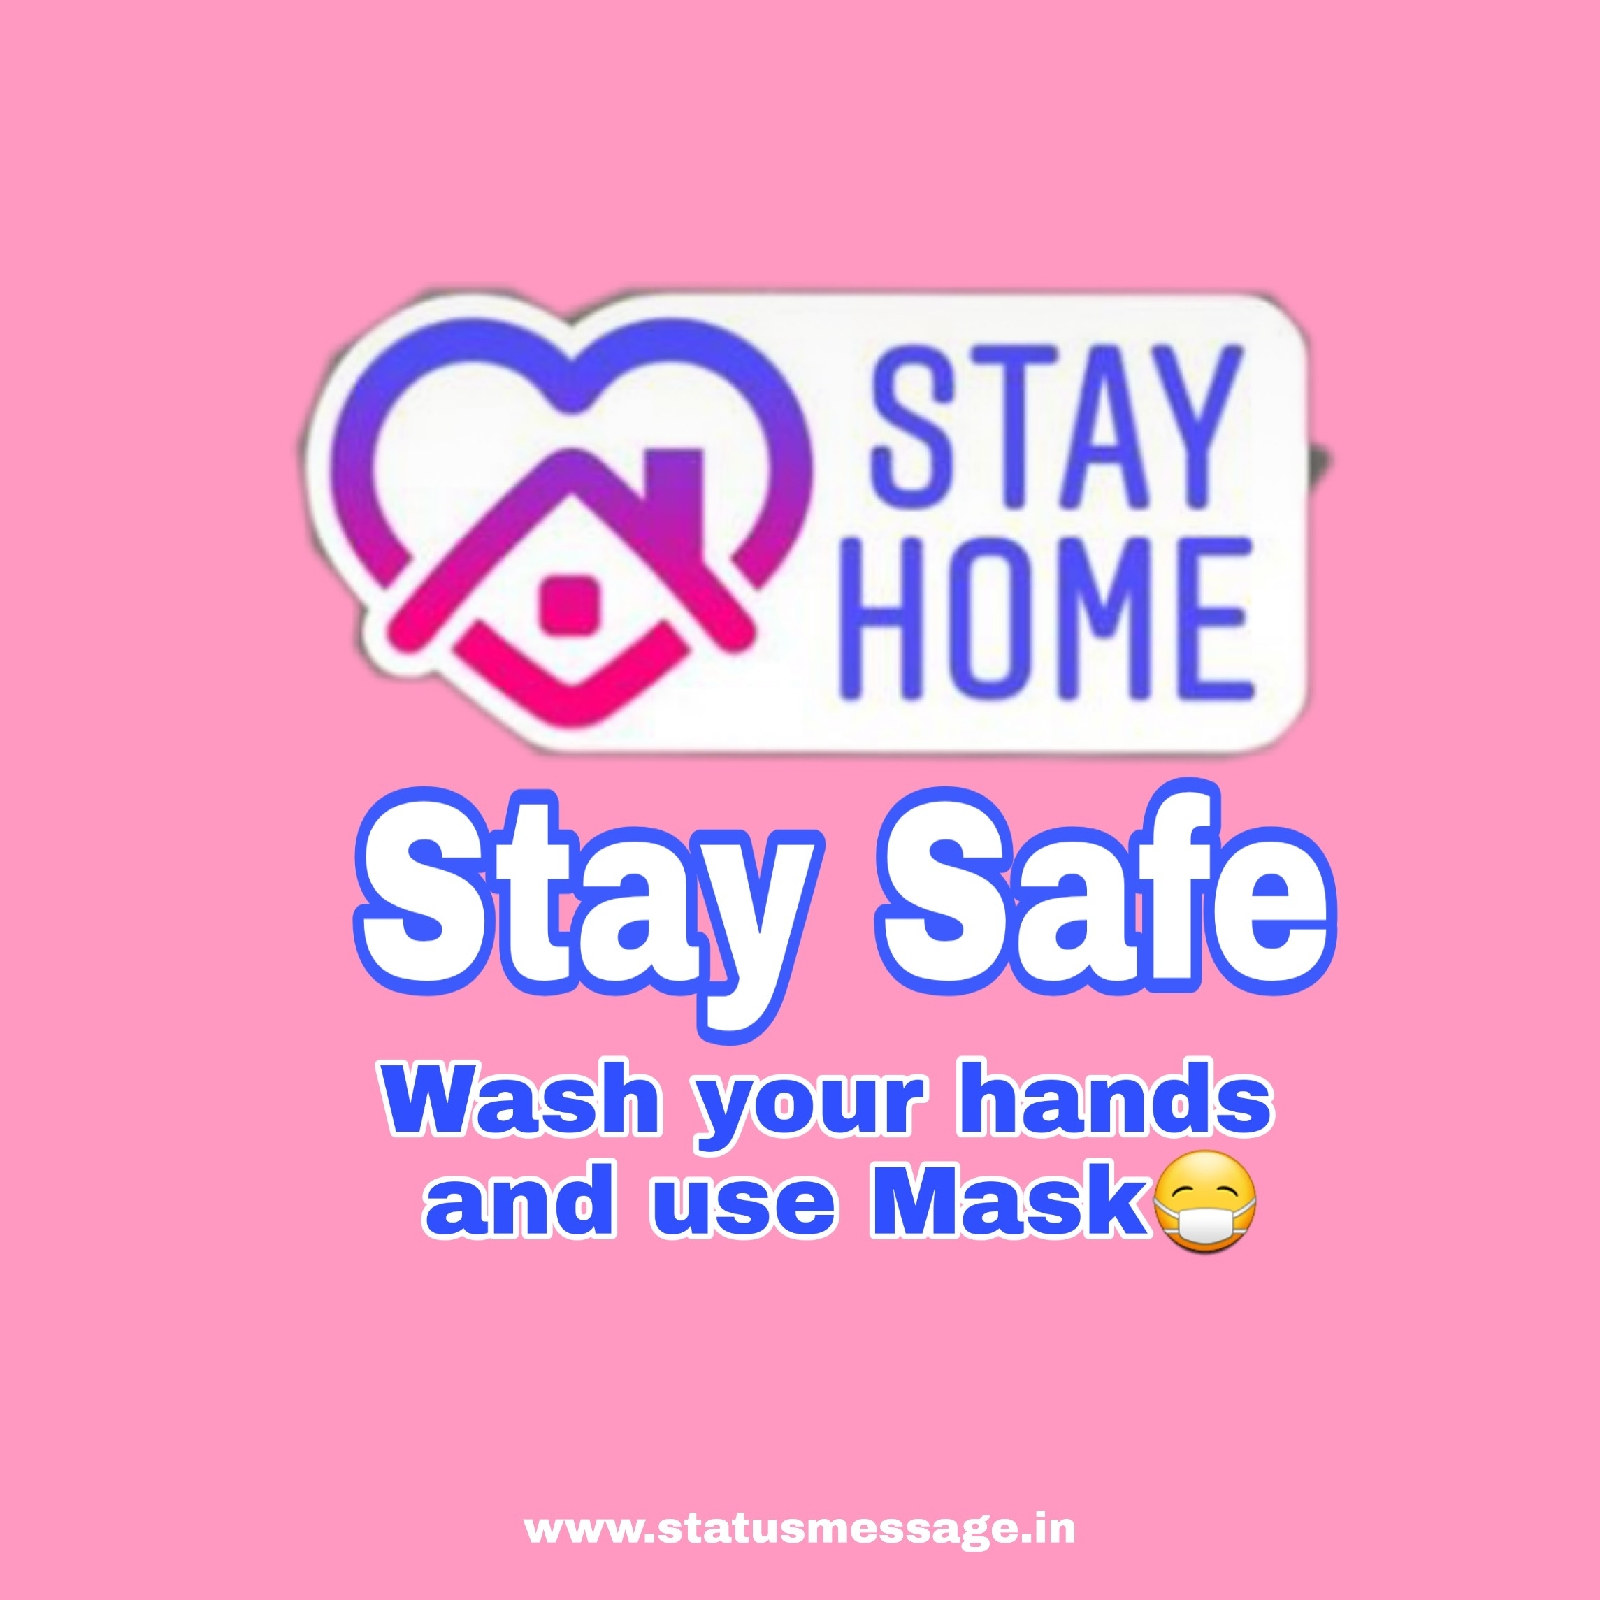 stay home stay safe wallpaper download, stay home image download, Quarantine